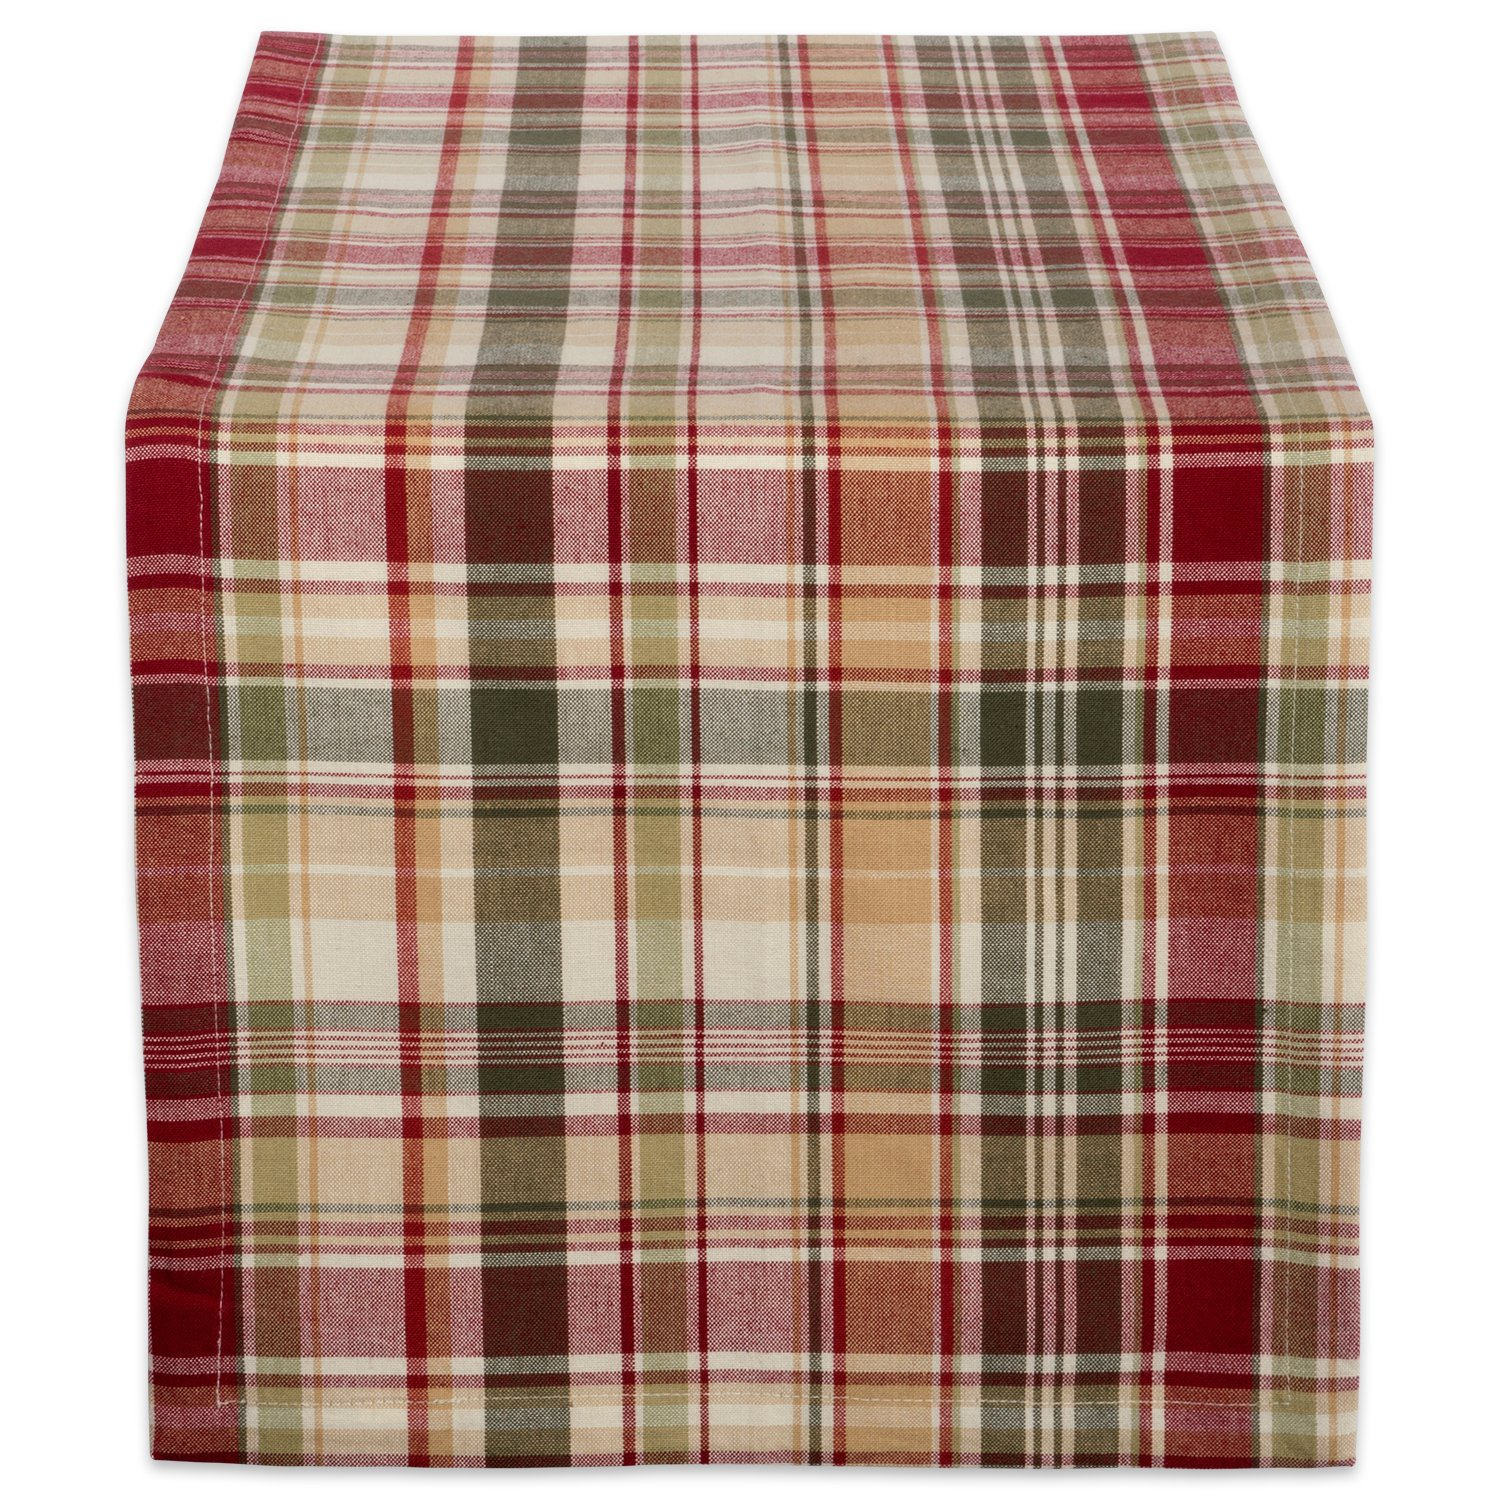 Cabin Plaid 100% Cotton Table Runner (14x108'') by DII (Image #1)